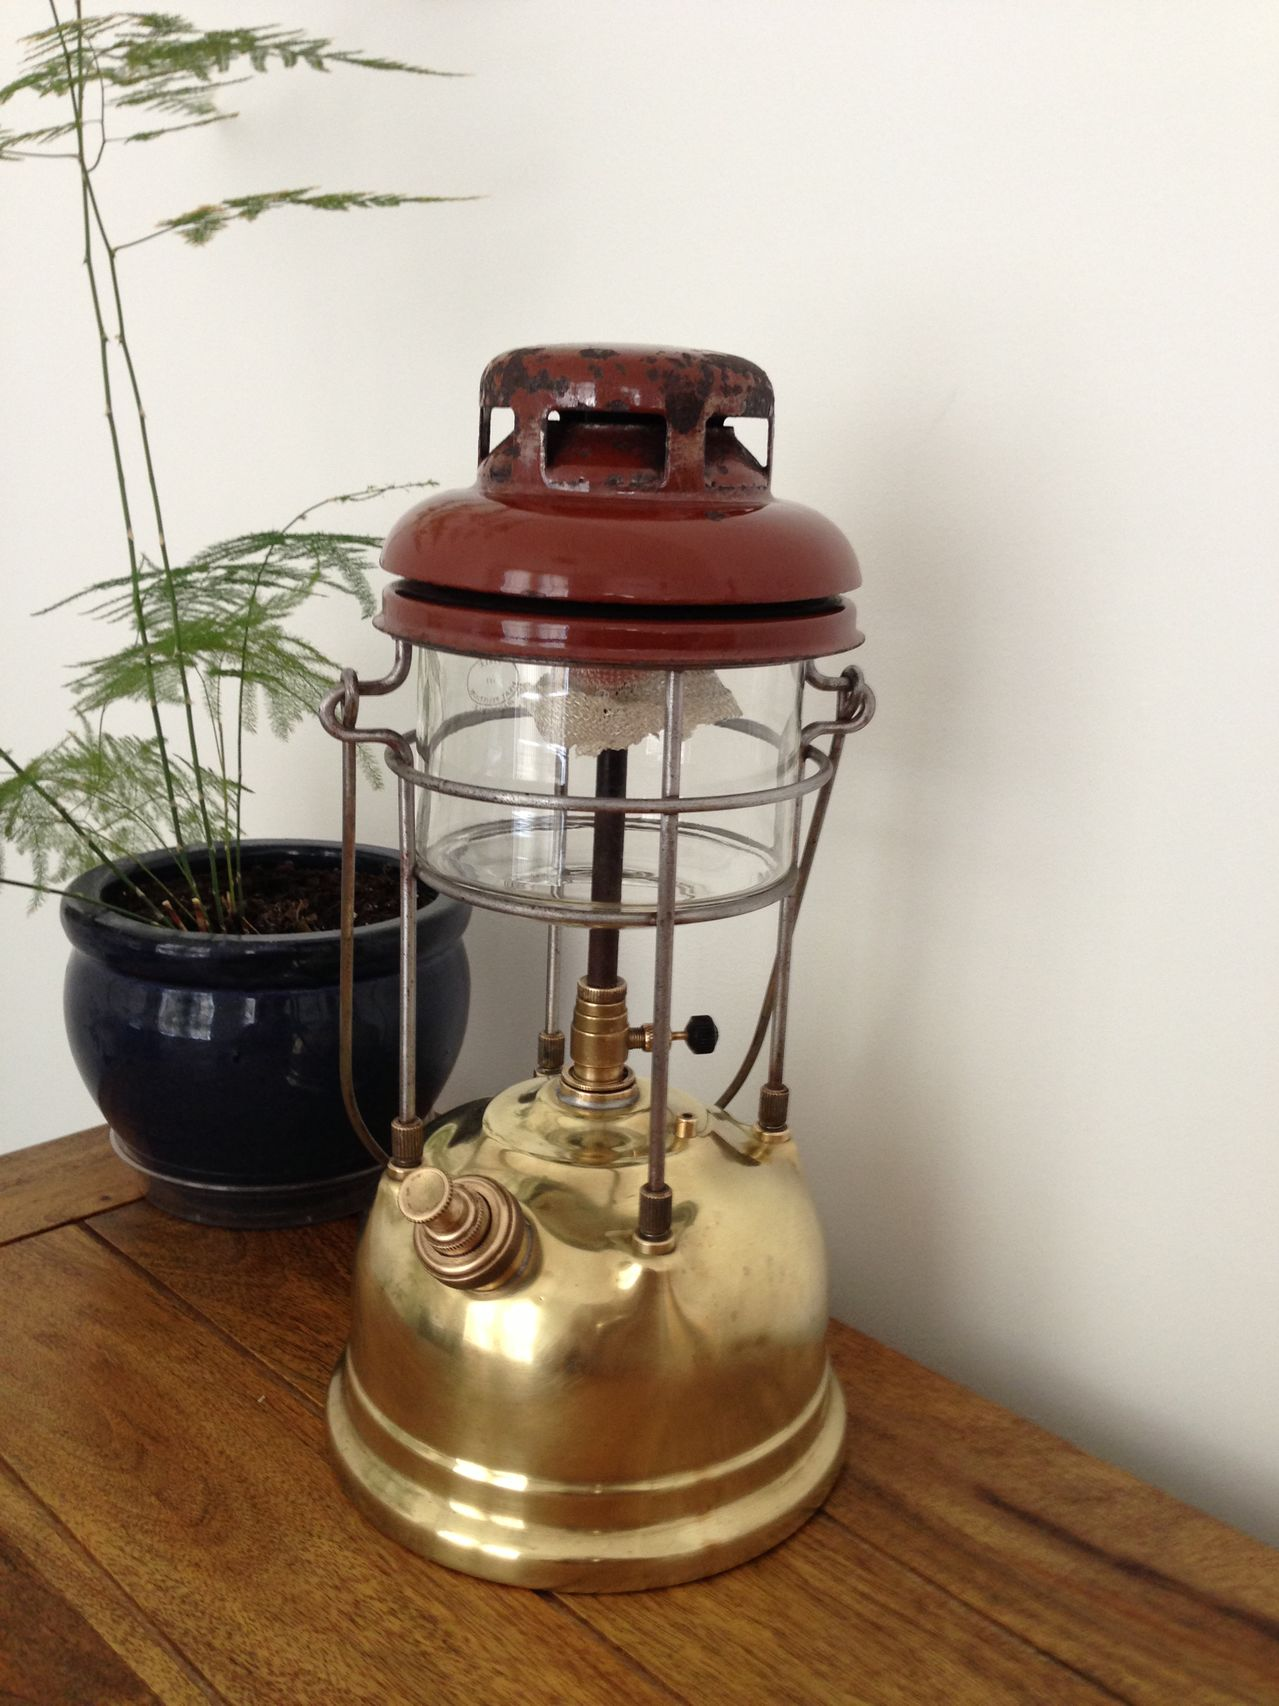 Tilley lamp adds a little bit of shade to your room